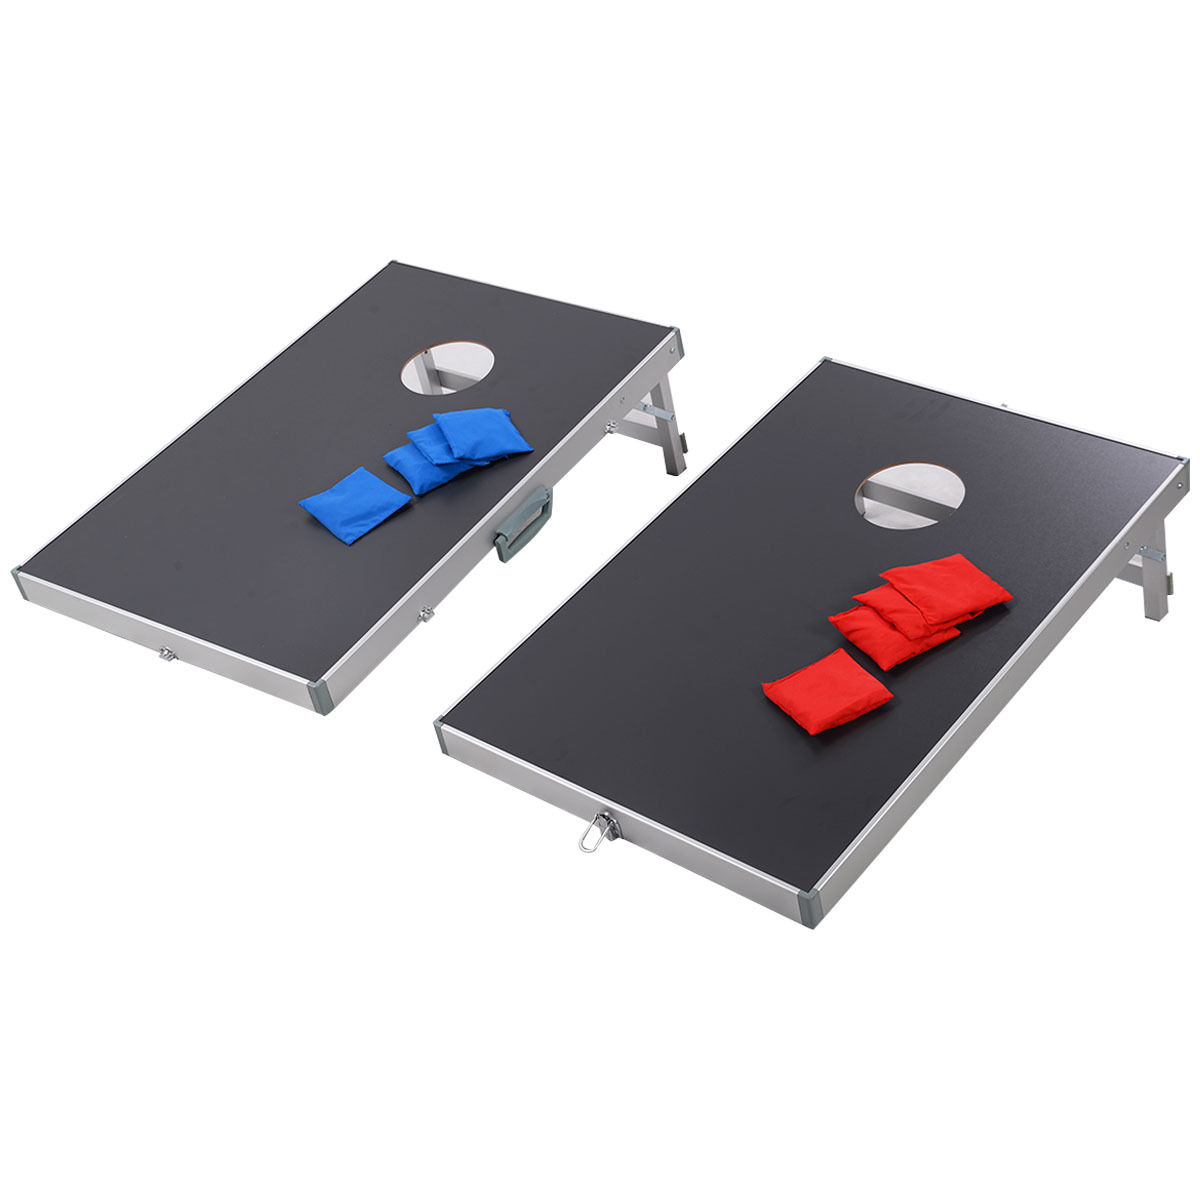 Foldable Beanbag Toss Cornhole Game Set Boards Tailgate Regulation Baggo by Costway